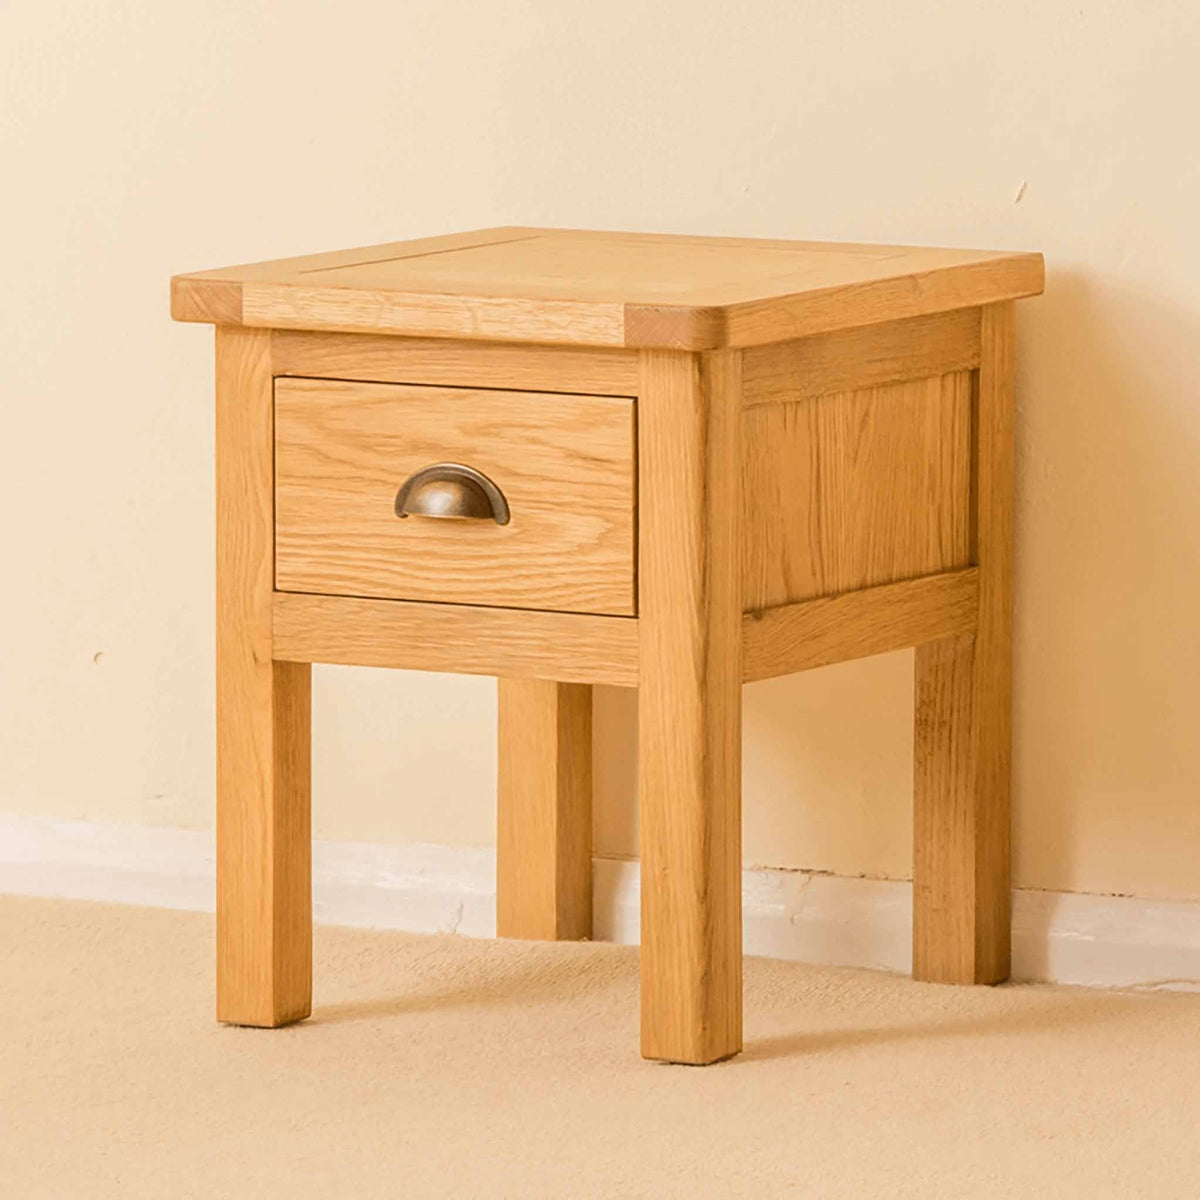 Roseland Oak Lamp Table - Lifestyle side view